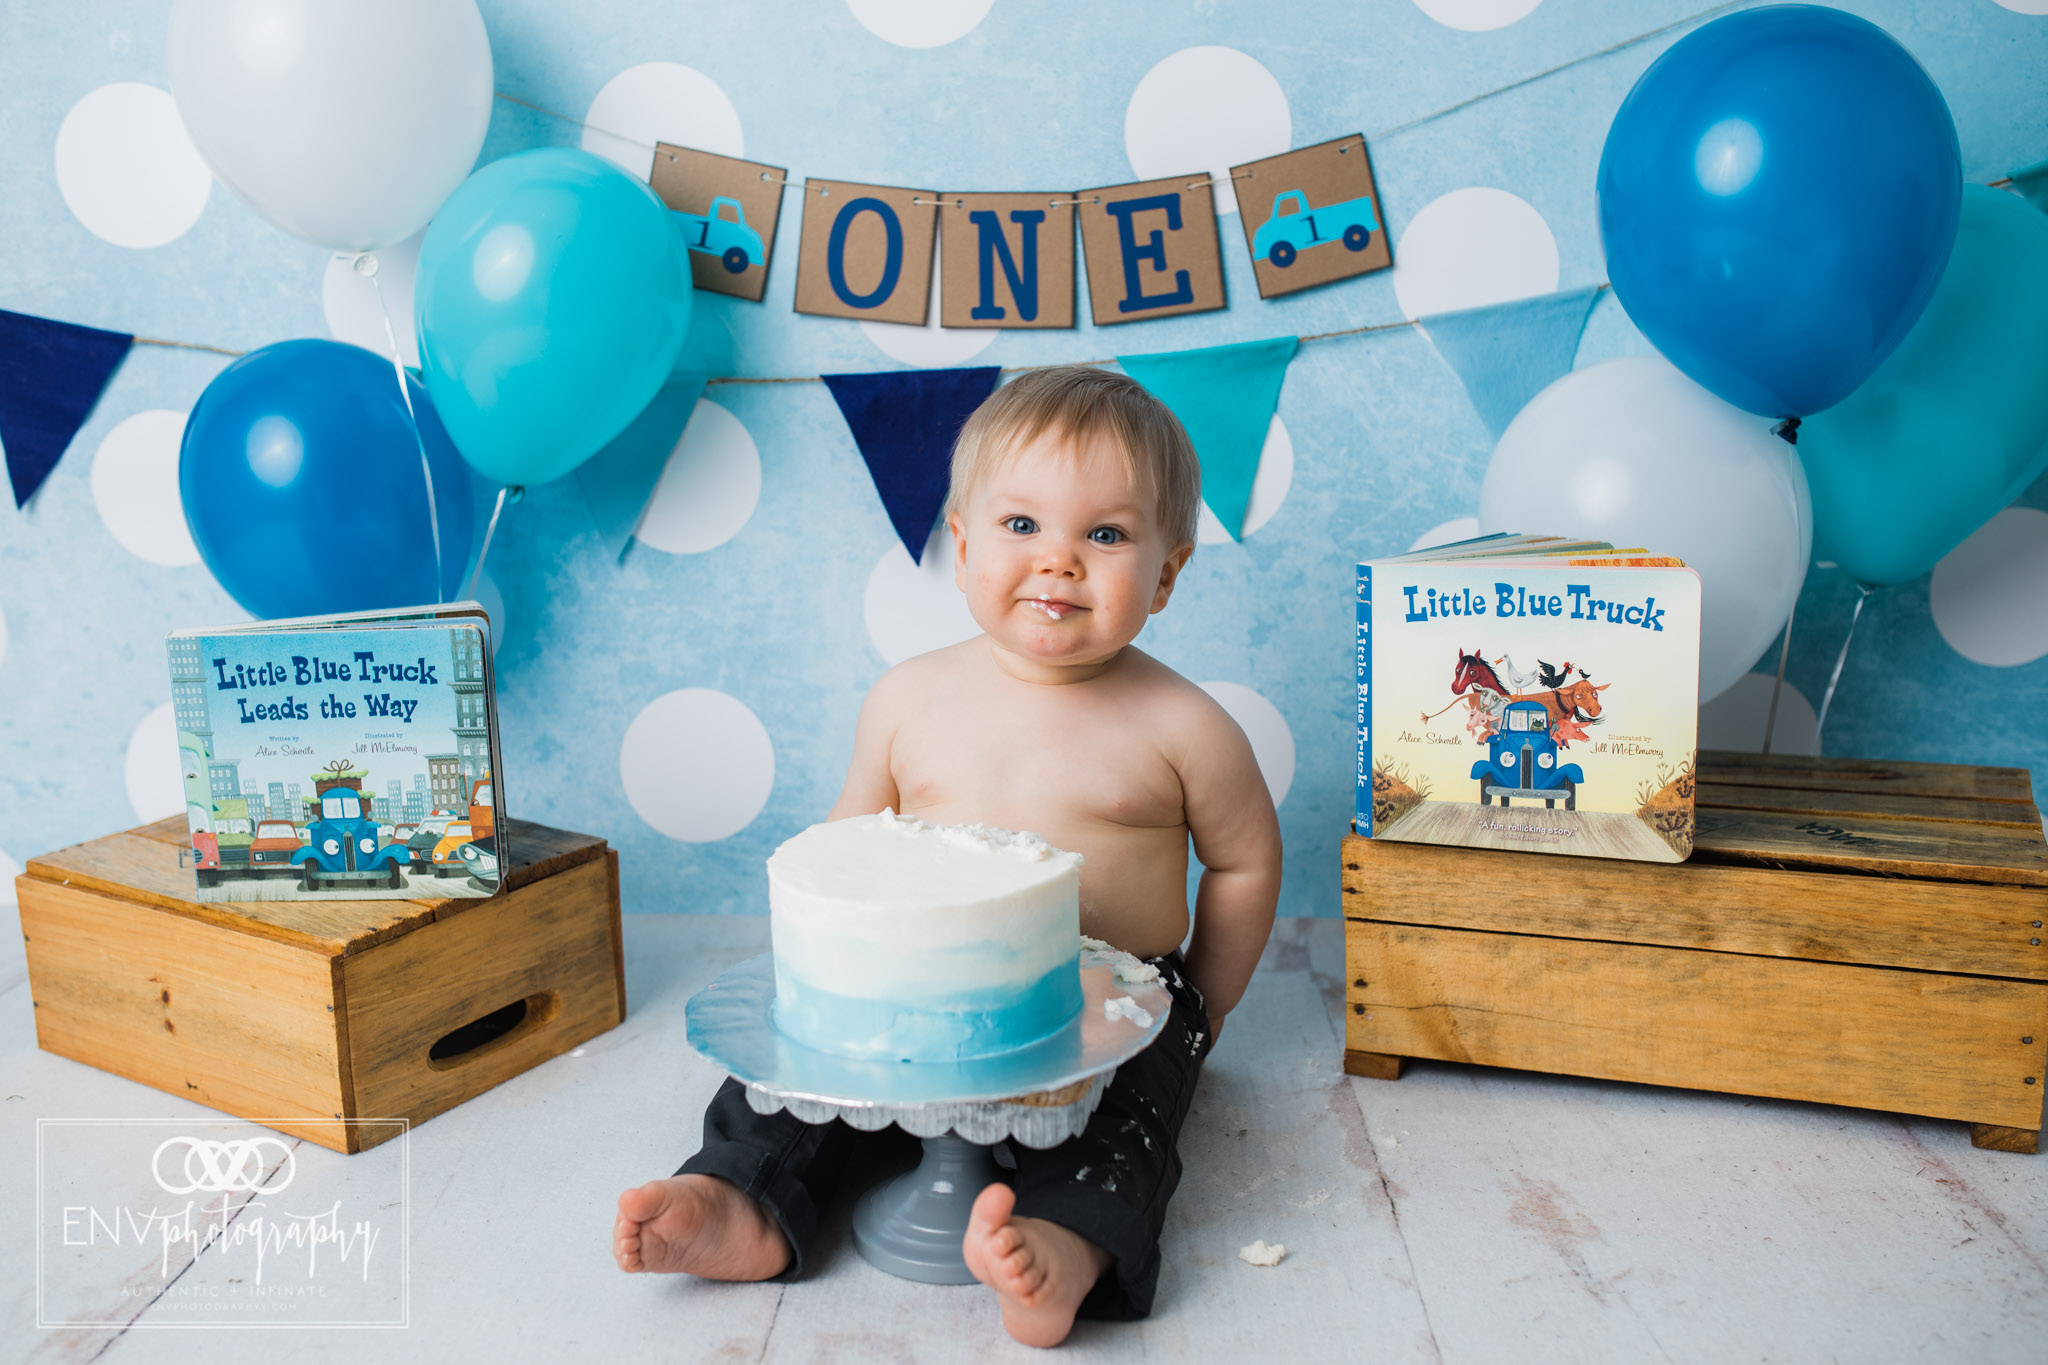 columbus ohio mount vernon ohio family photographer little blue truck cake smash (8).jpg